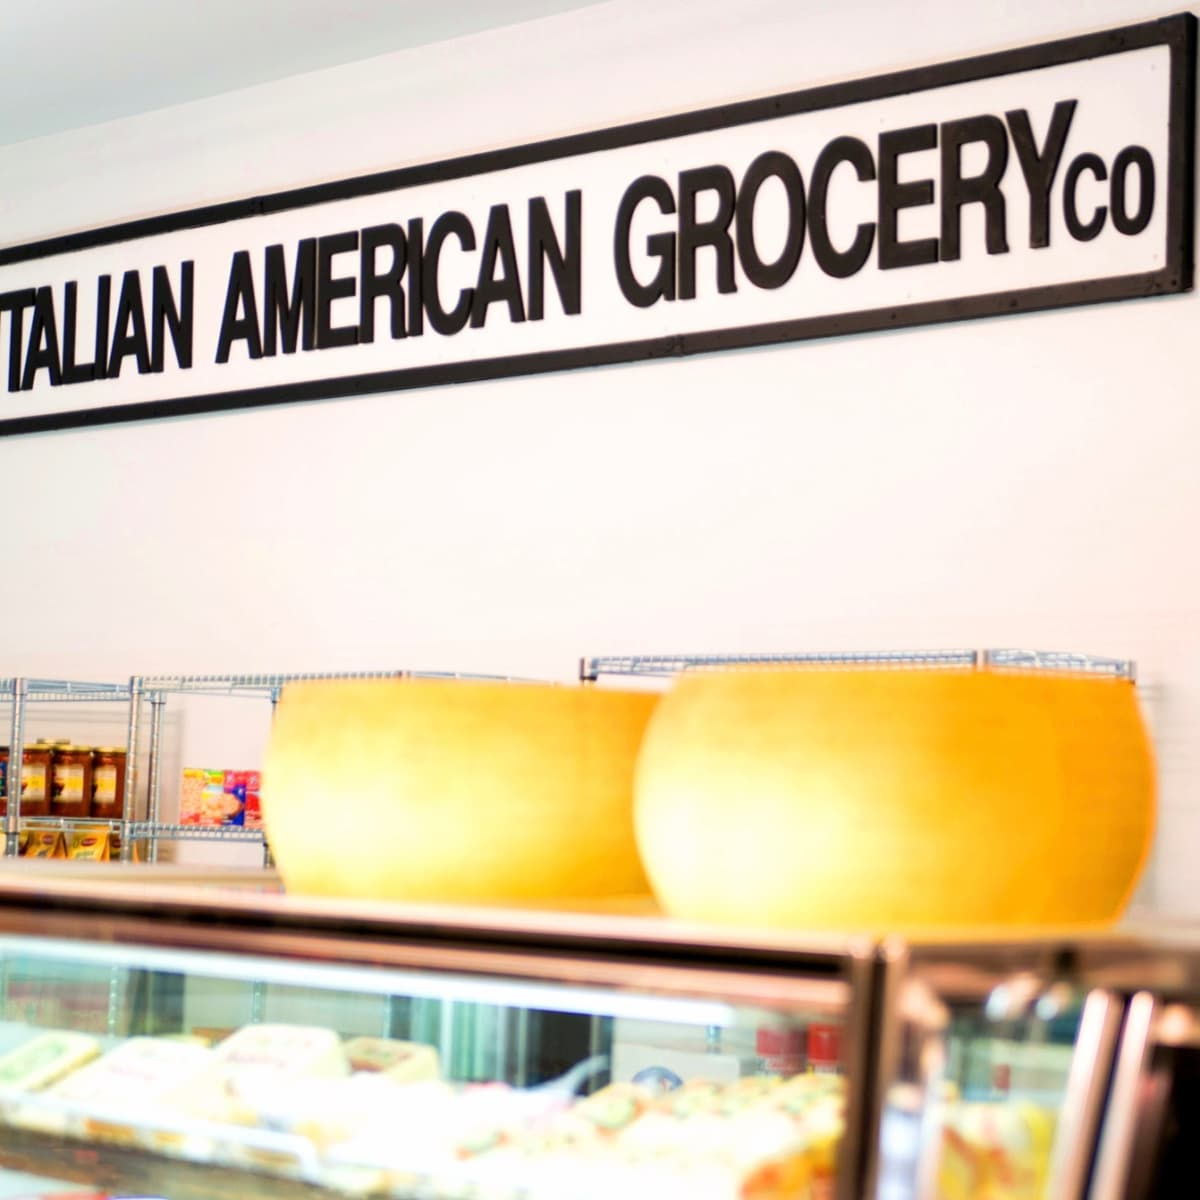 Italian American Grocery Heights internal sign